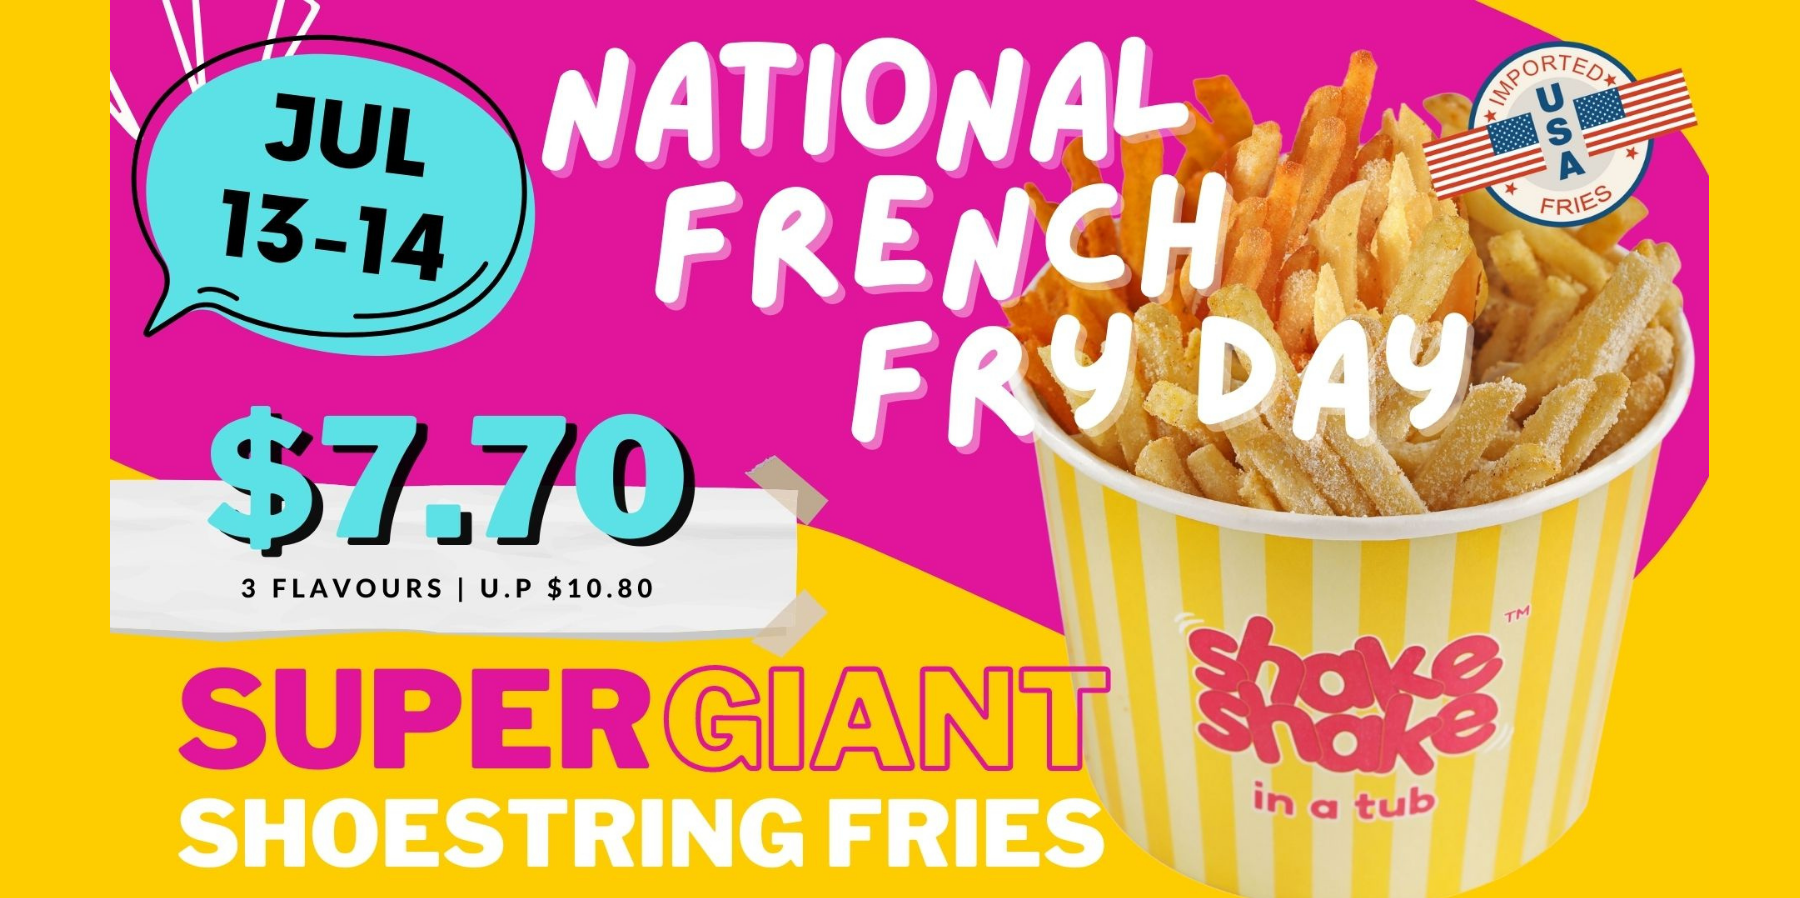 It's a French Fries Frenzy with Shake Shake In A Tub this National French Fry Day!